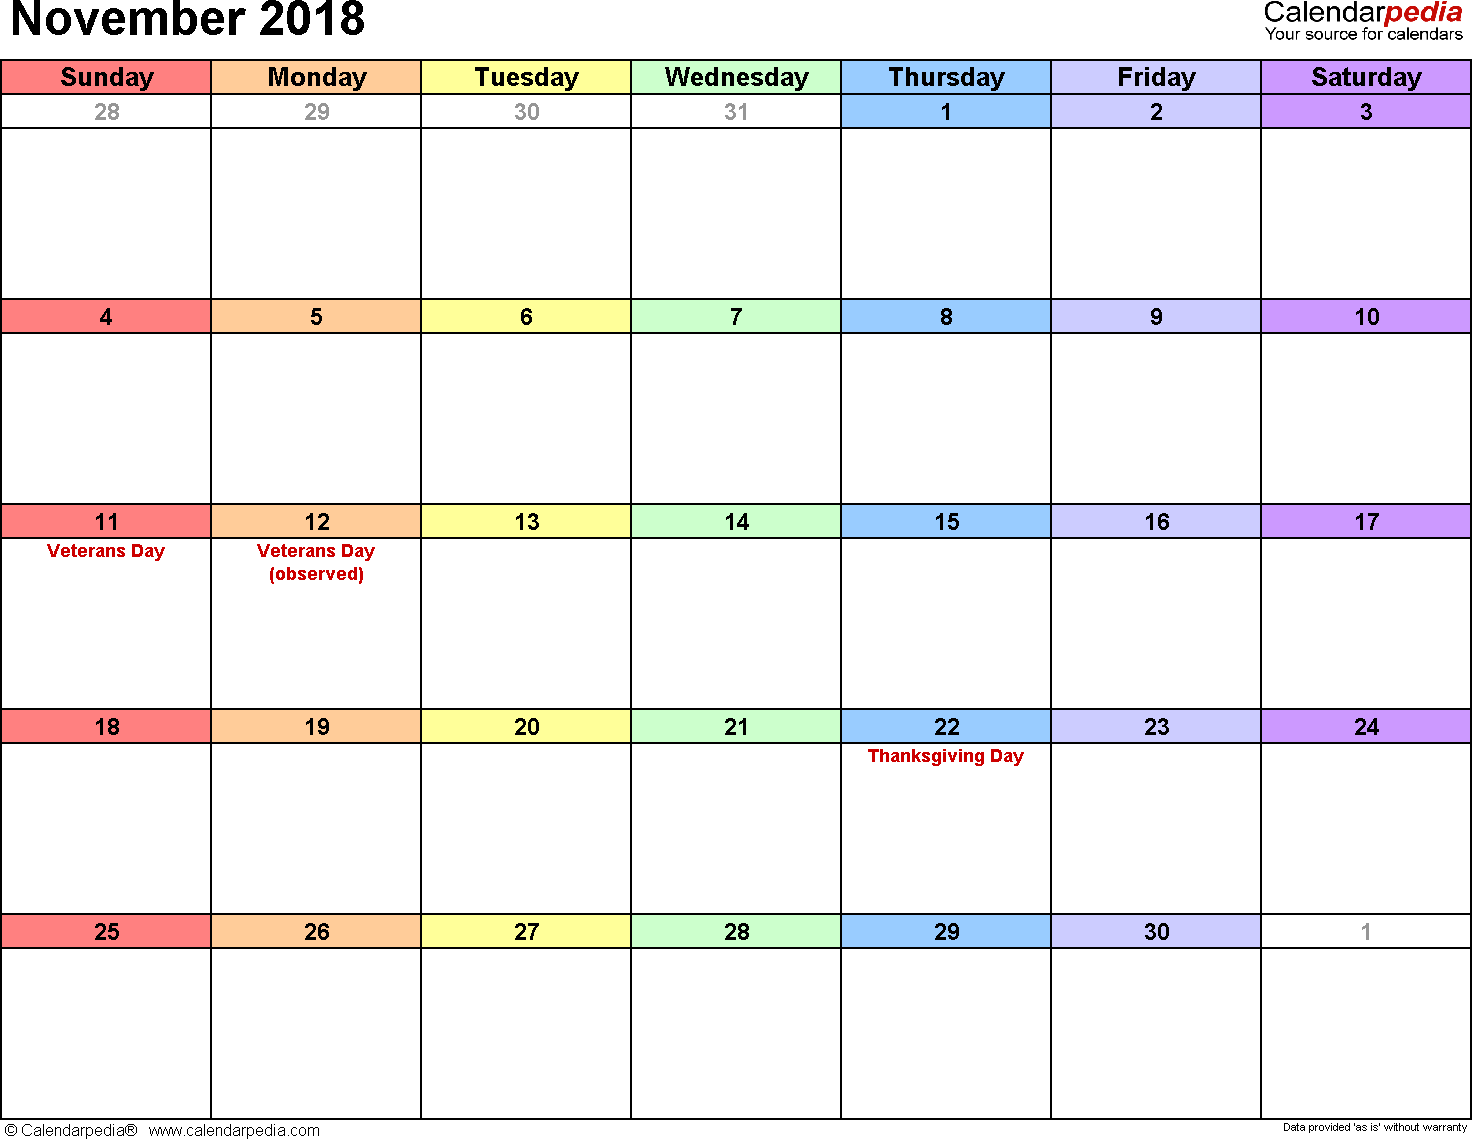 November 2018 Calendars For Word, Excel & Pdf | Calendar | Pinterest